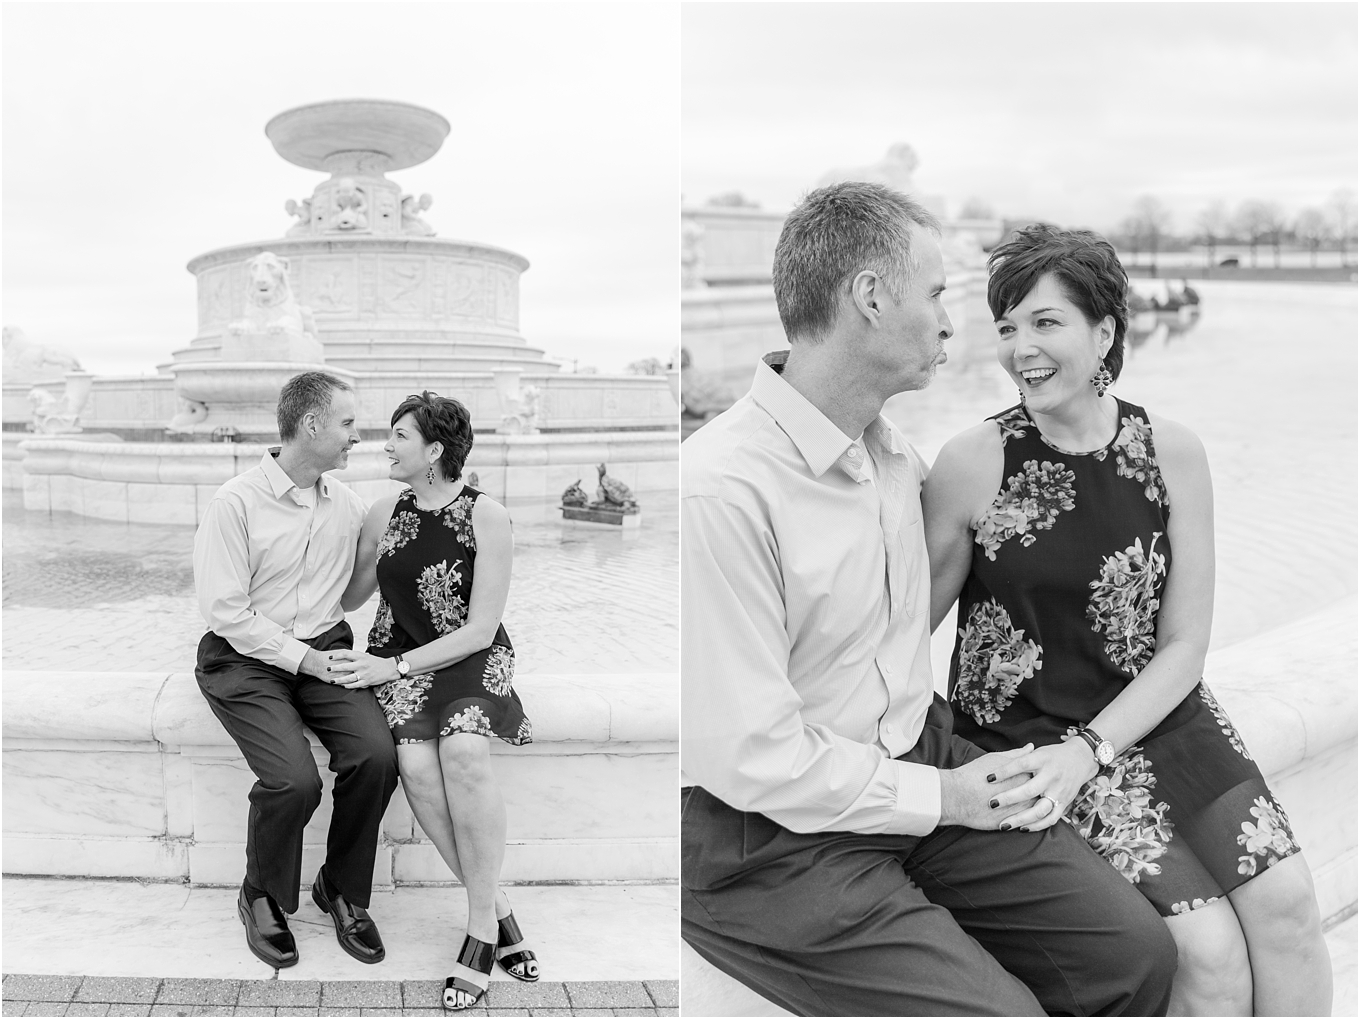 downtown-detroit-engagement-photos-on-belle-isle-by-courtney-carolyn-photography_0006.jpg